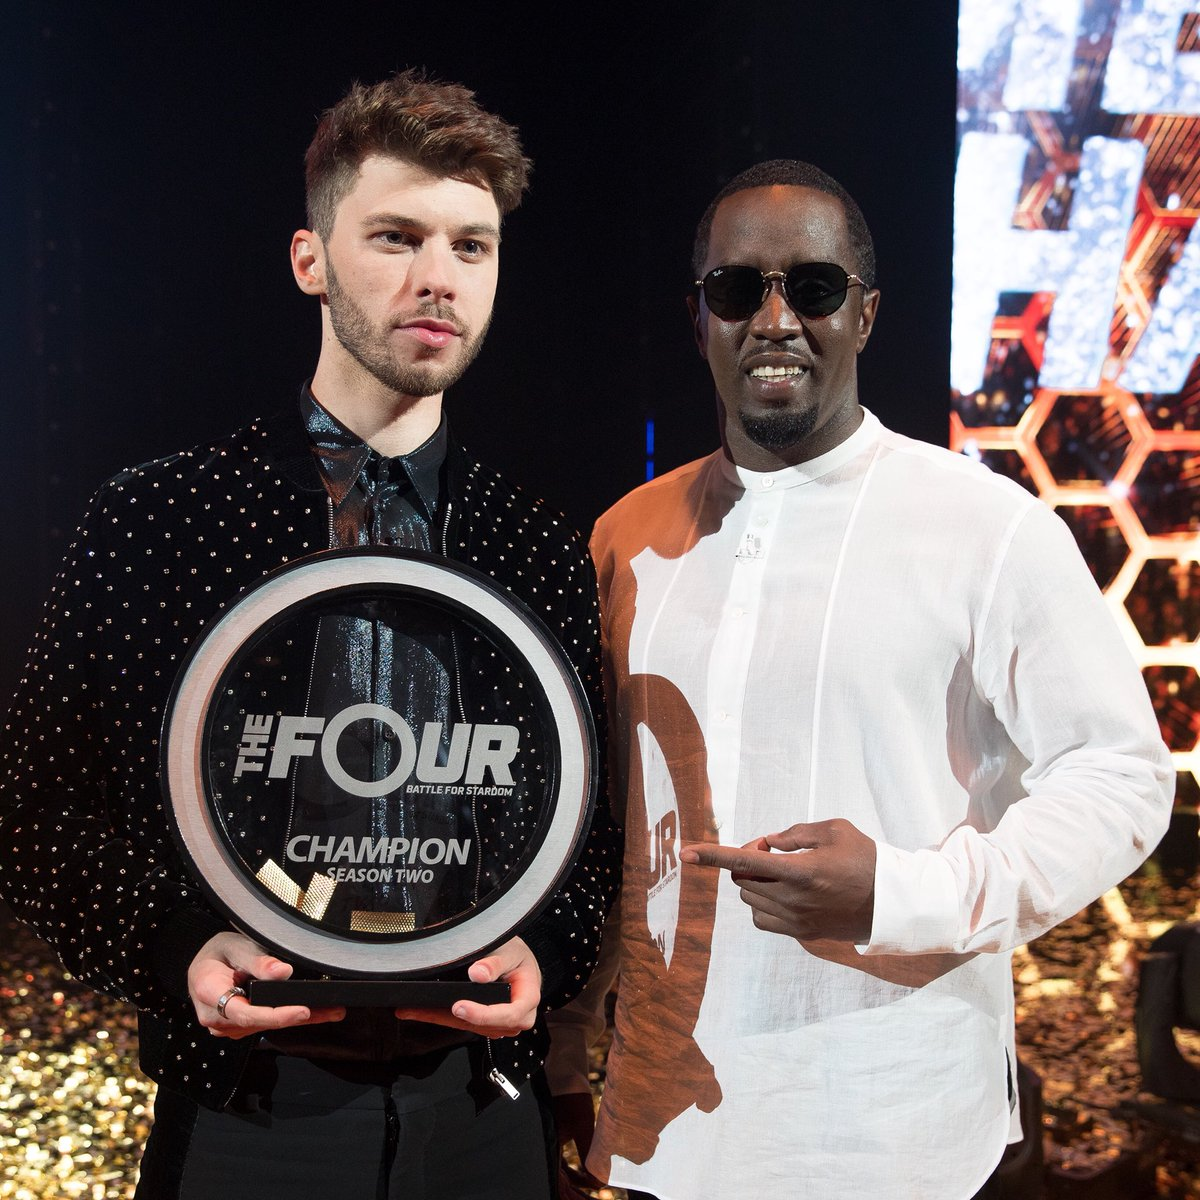 RT @Diddy: Congratulations @itsjamesgraham on winning Season 2 of #TheFour! Let's get it! https://t.co/kUGhRMITnw